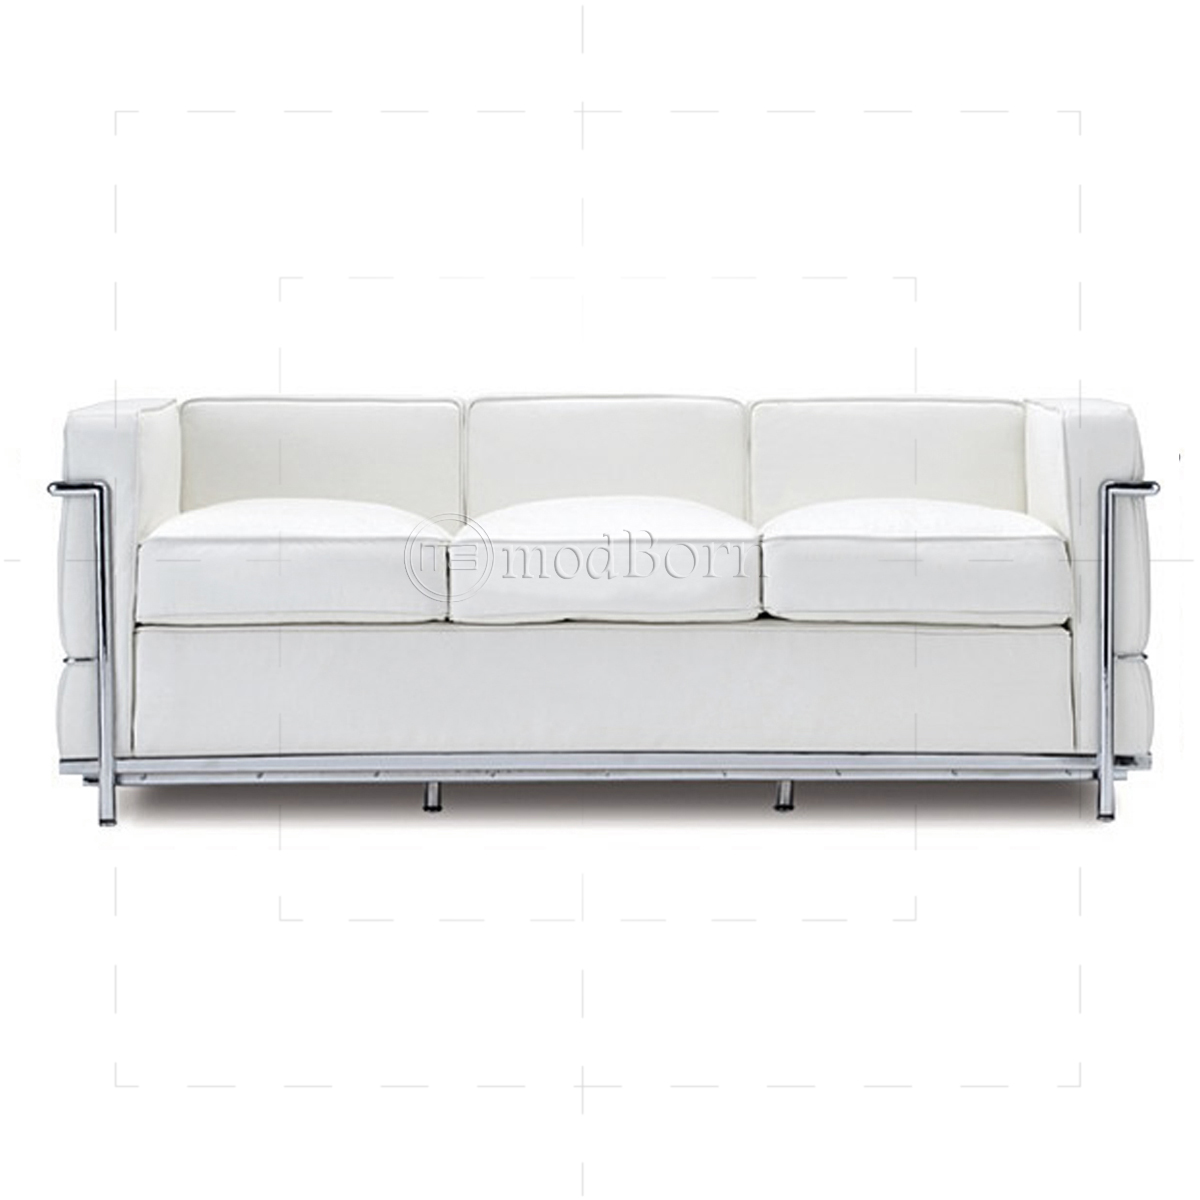 Le corbusier style lc2 sofa 3 seater white leather Le corbusier lc2 sofa